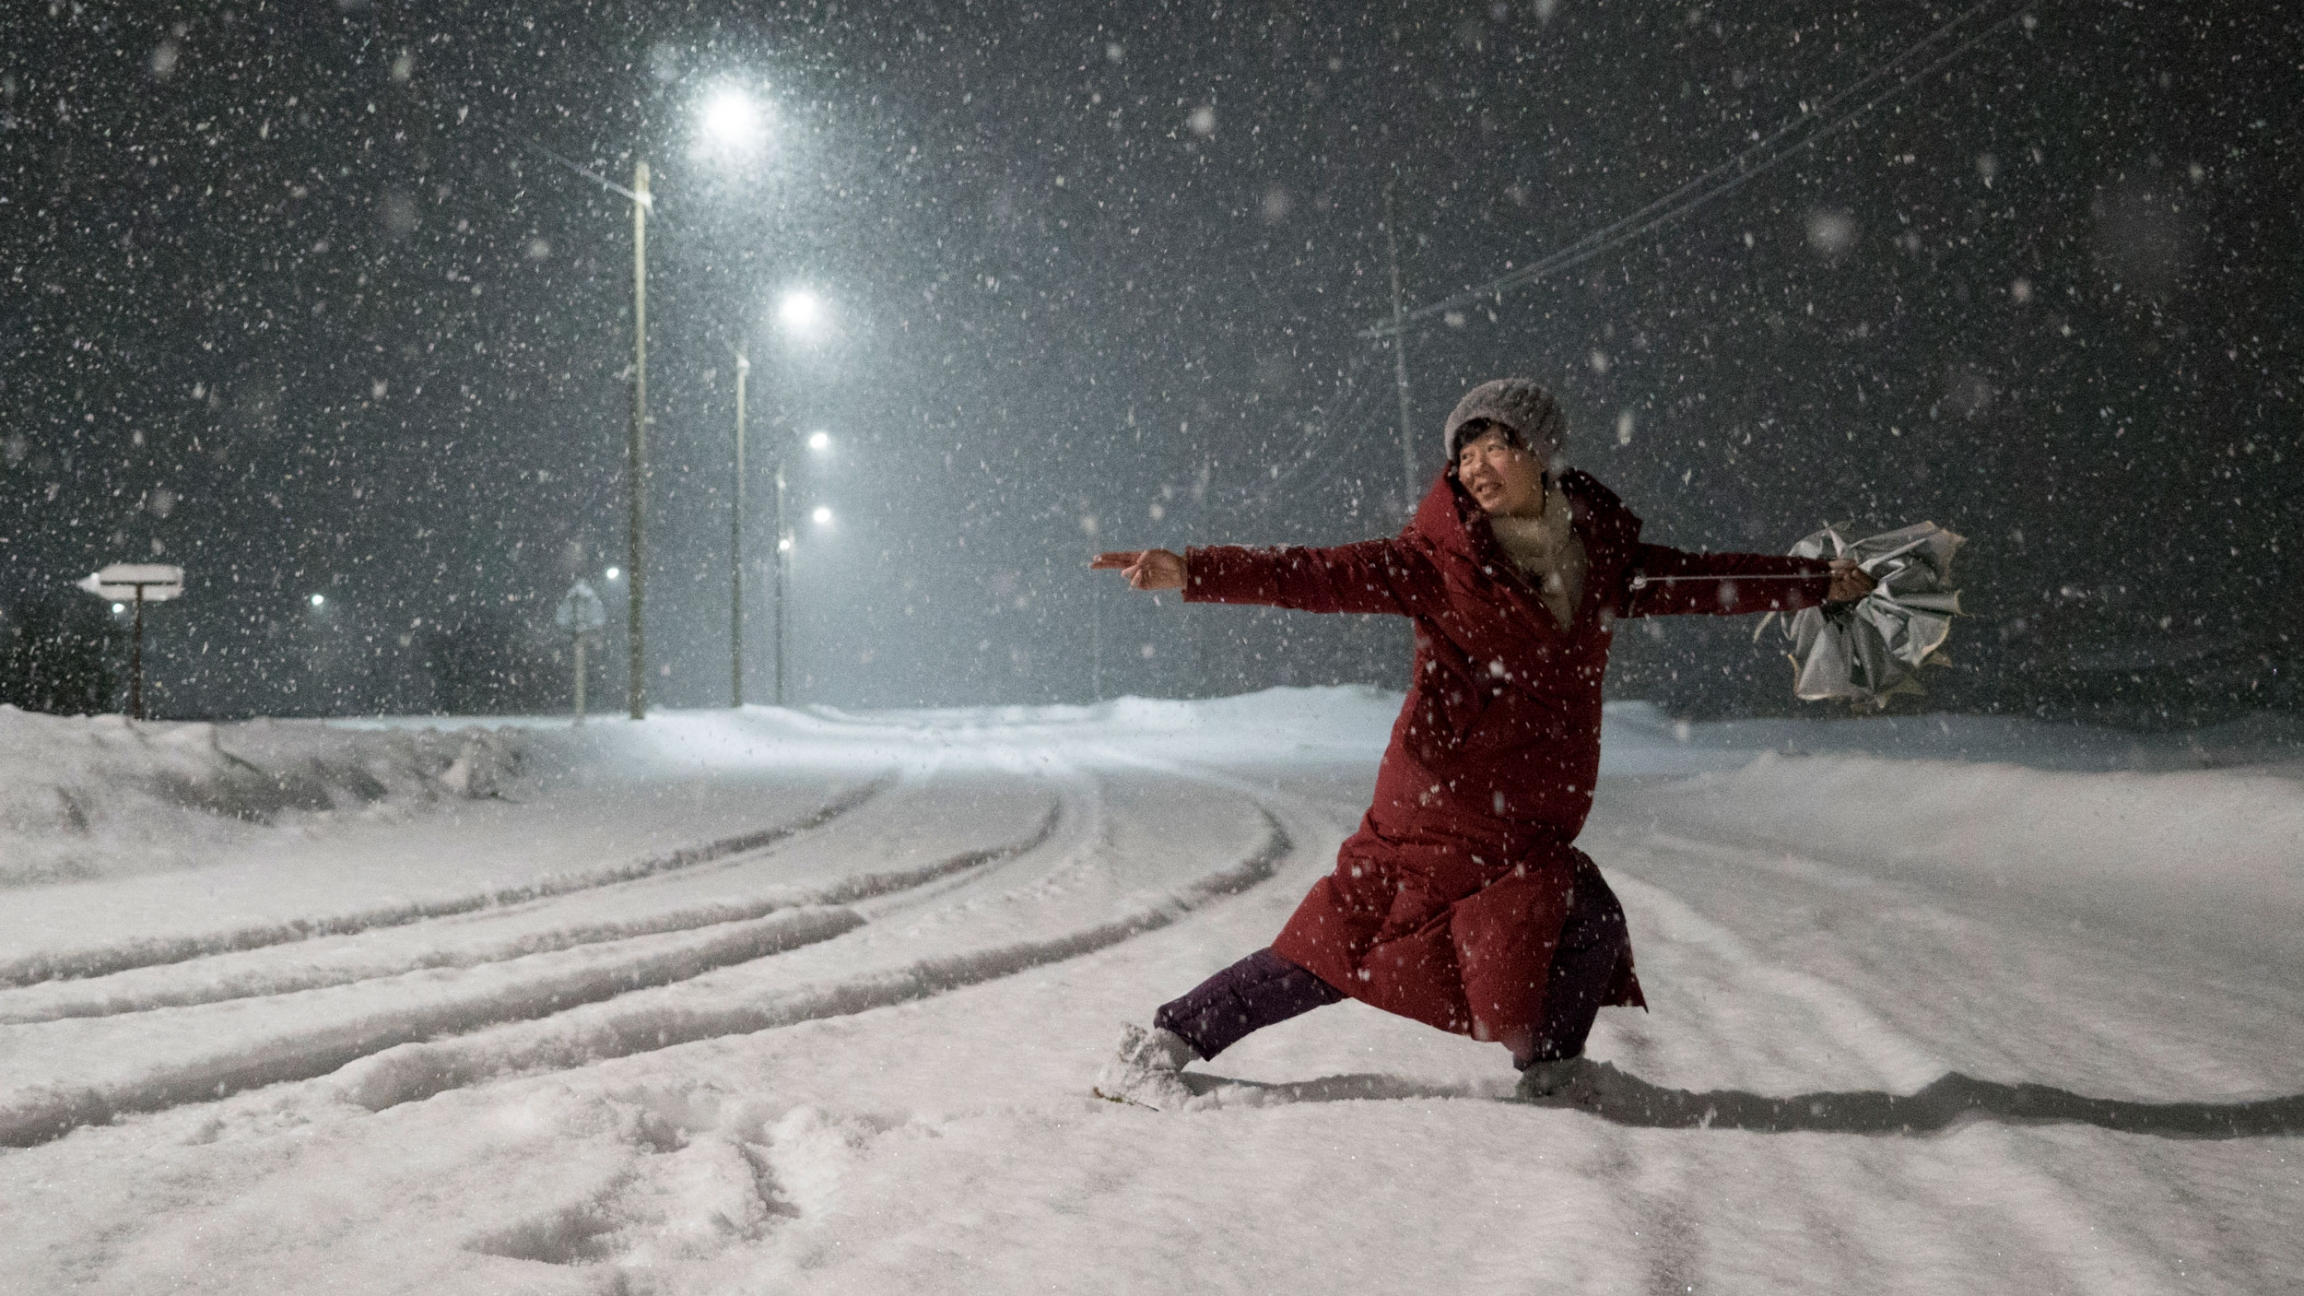 A woman in a red jacket is shown dancing in the street with snow falling all around her.